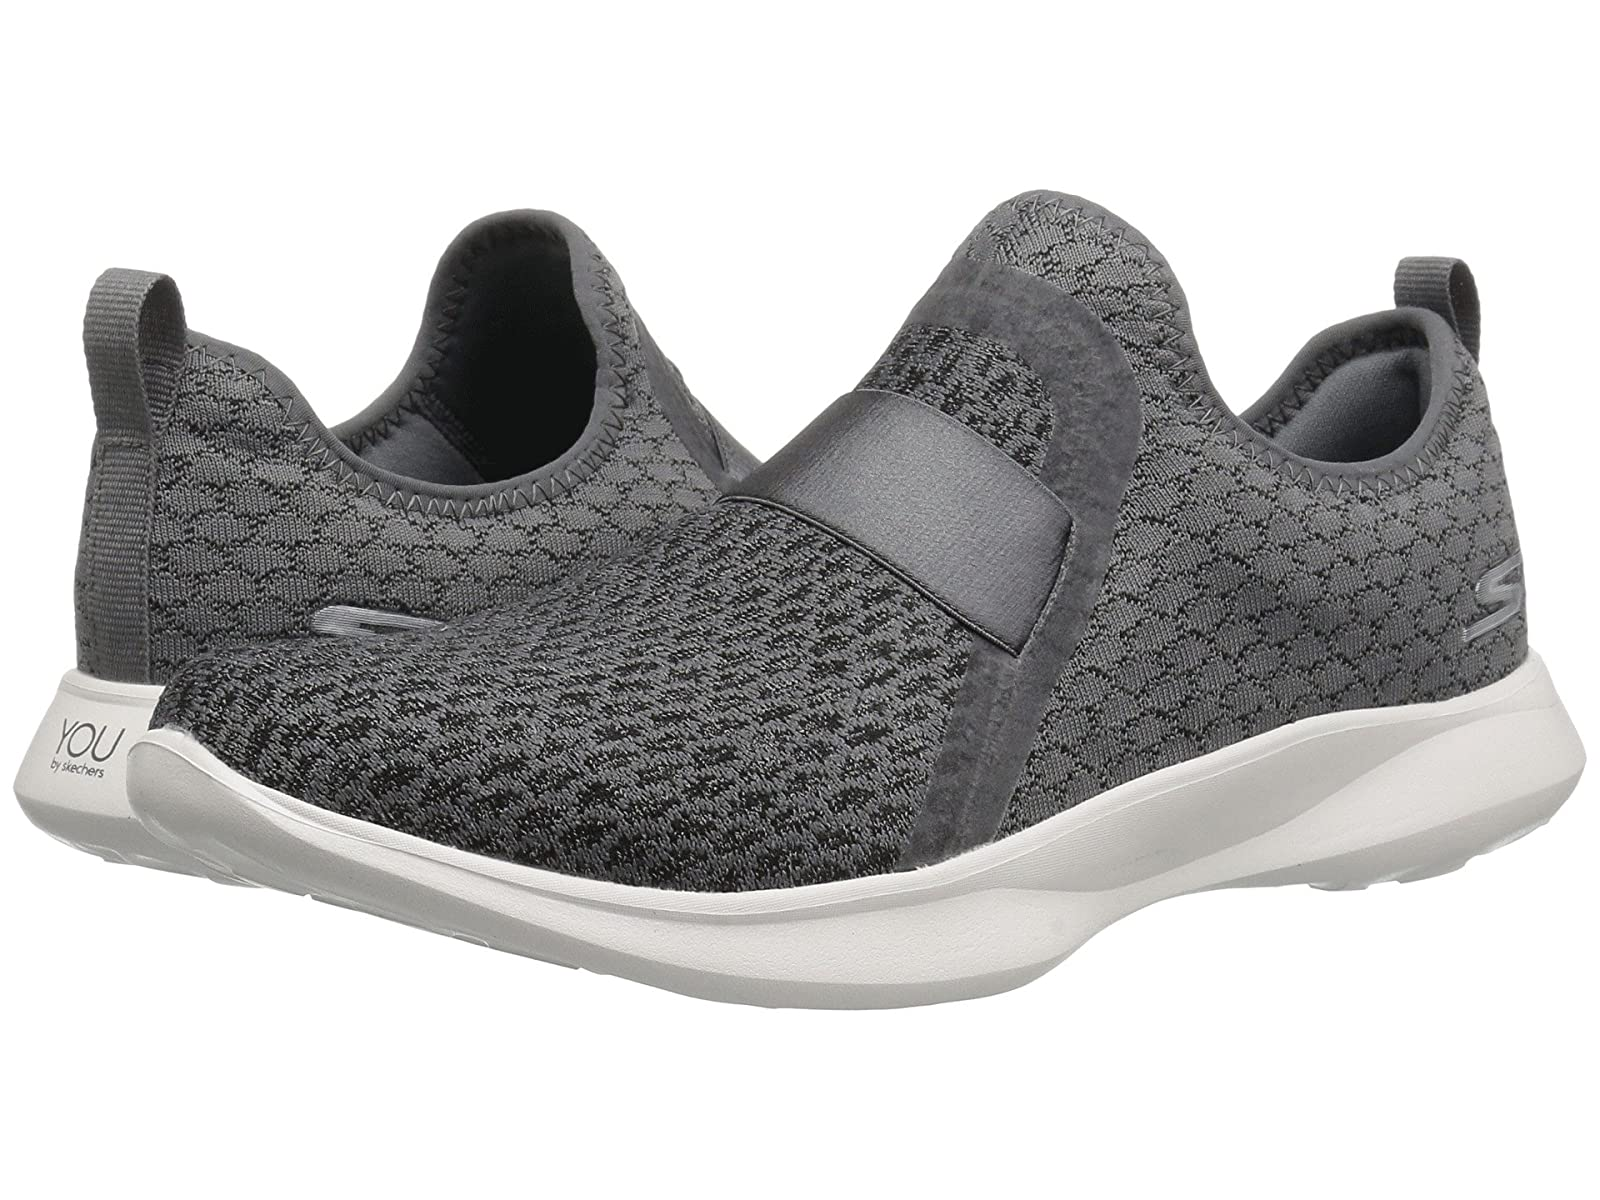 SKECHERS Performance SereneAtmospheric grades have affordable shoes